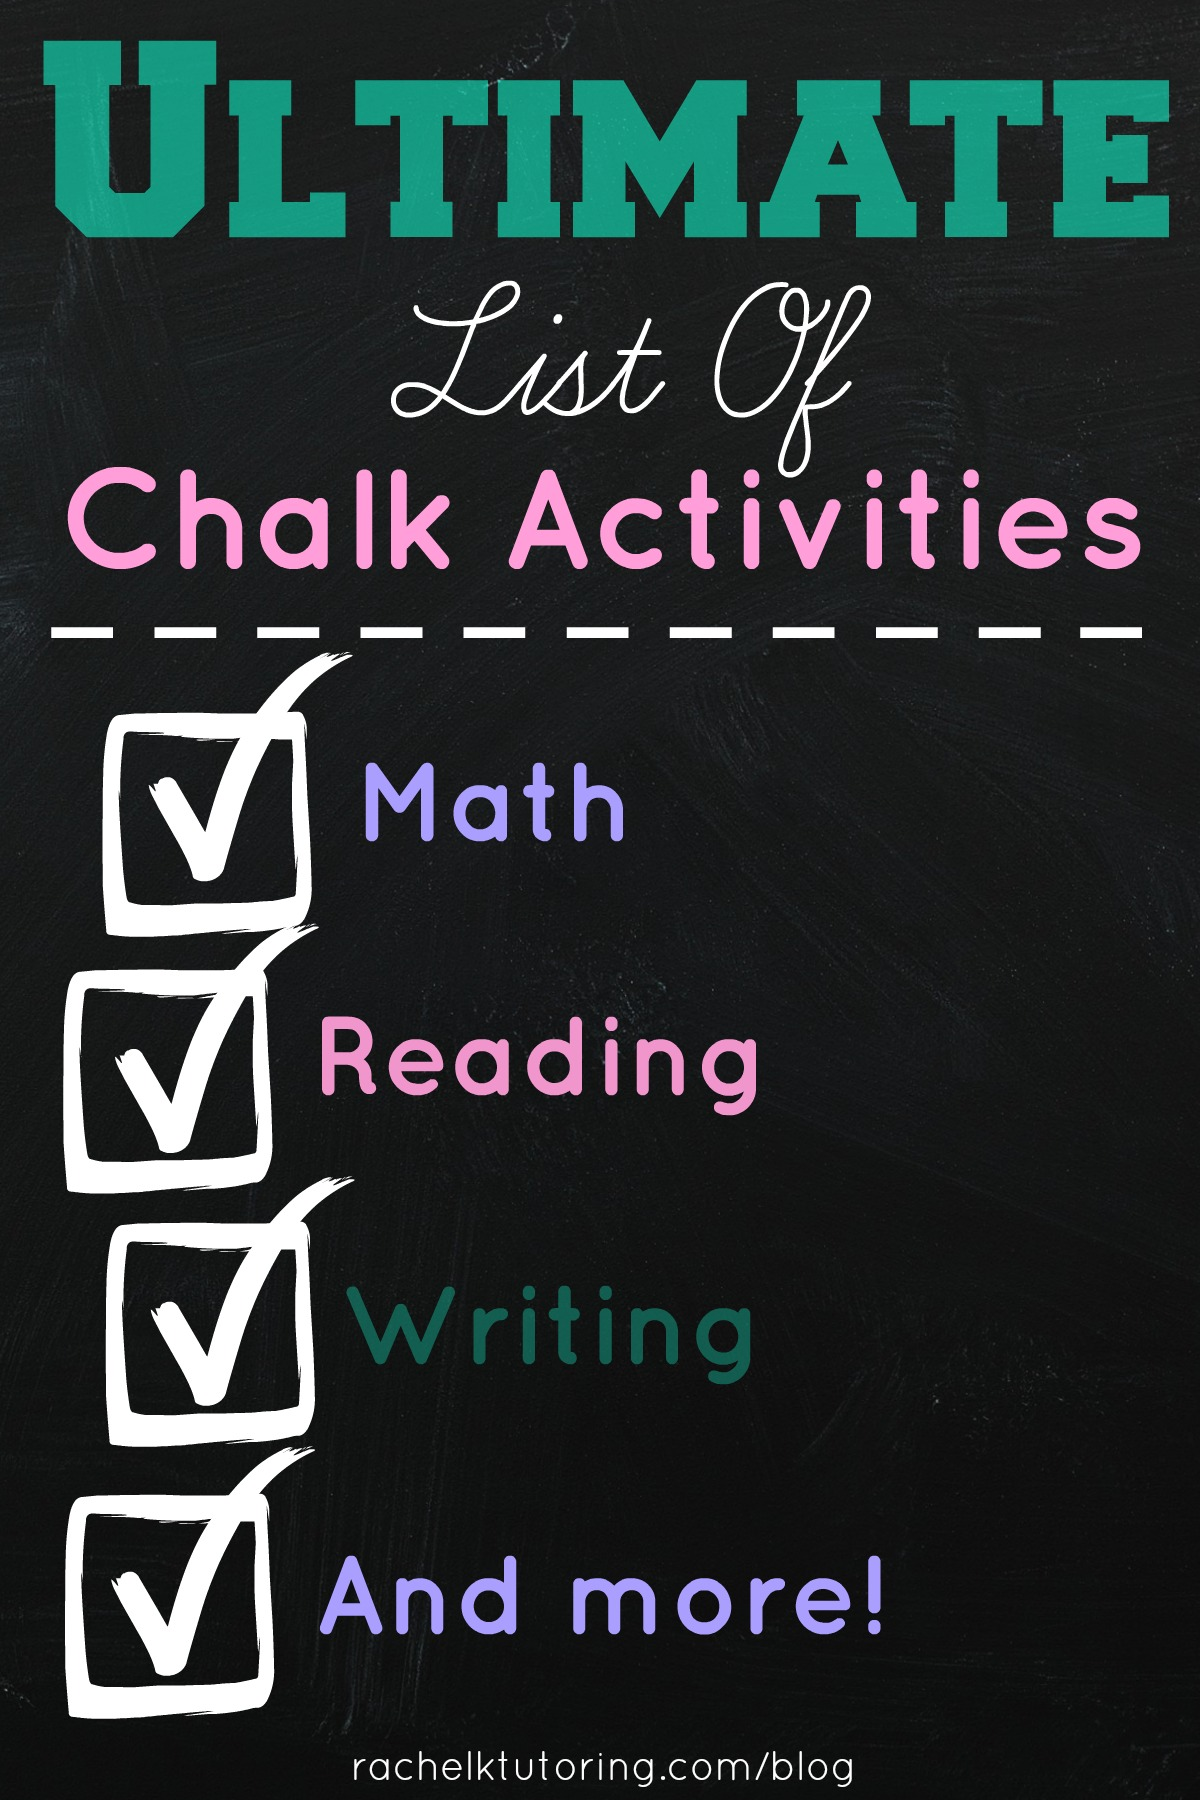 Ultimate List Of Chalk Activities Rachel K Tutoring Blog